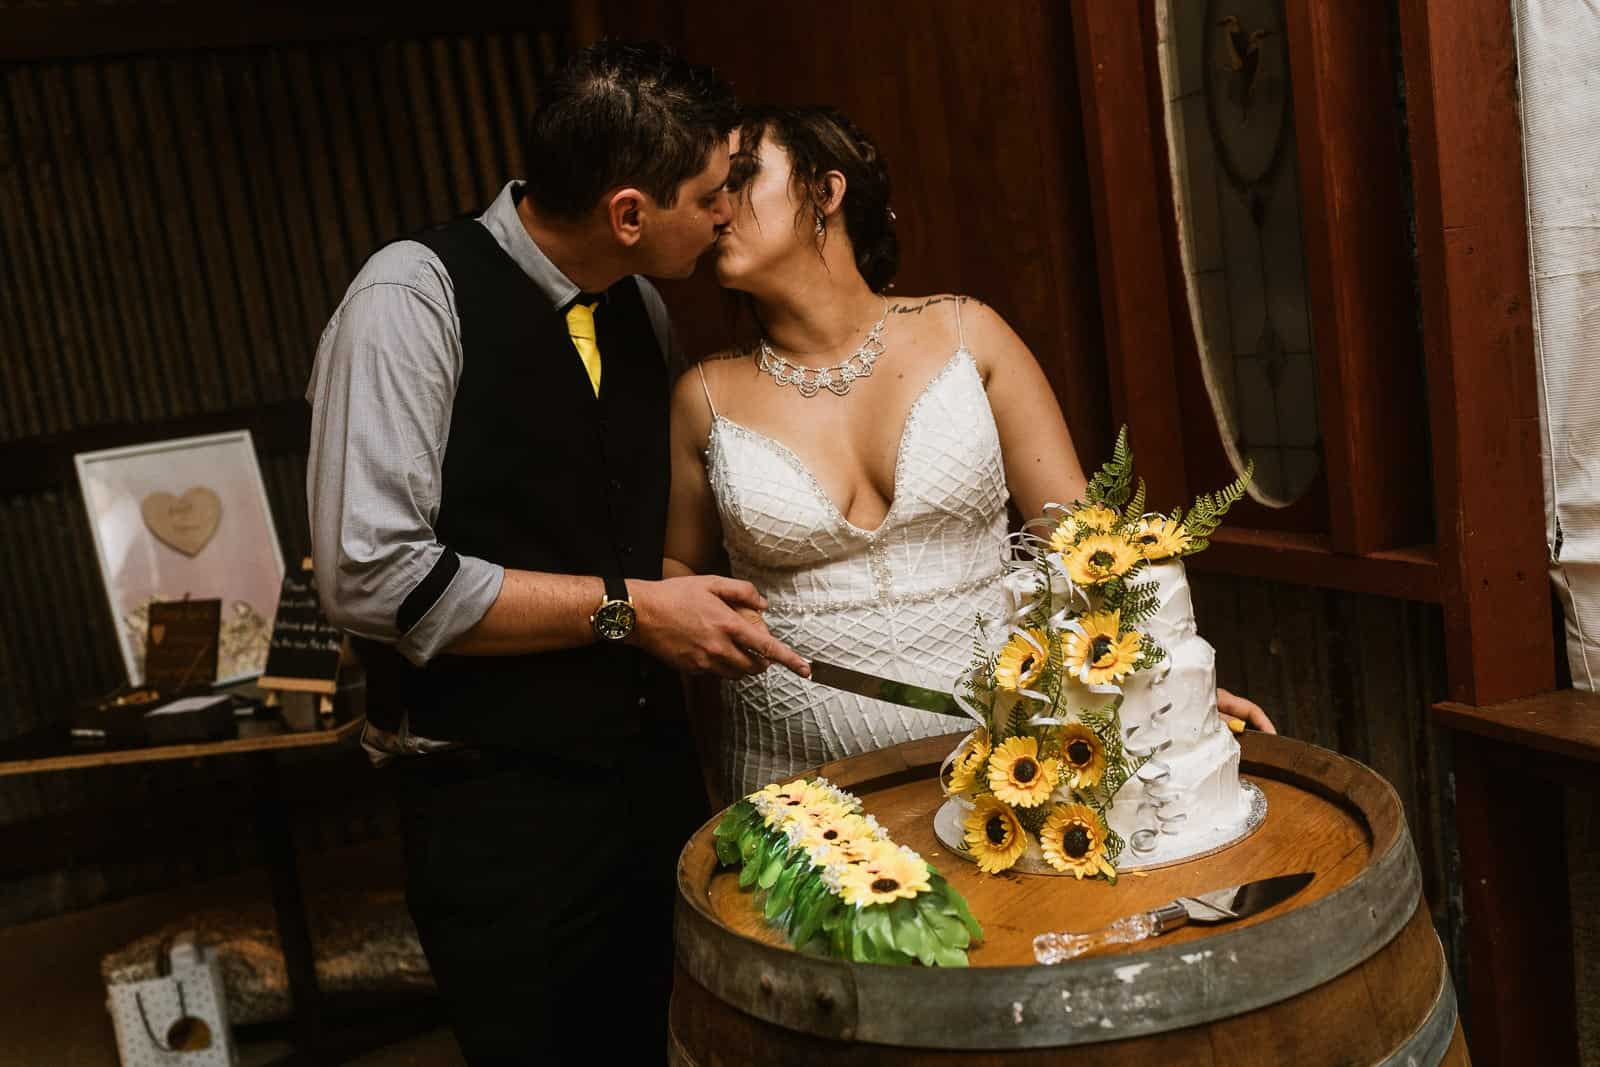 Bride & Groom kiss cutting the cake